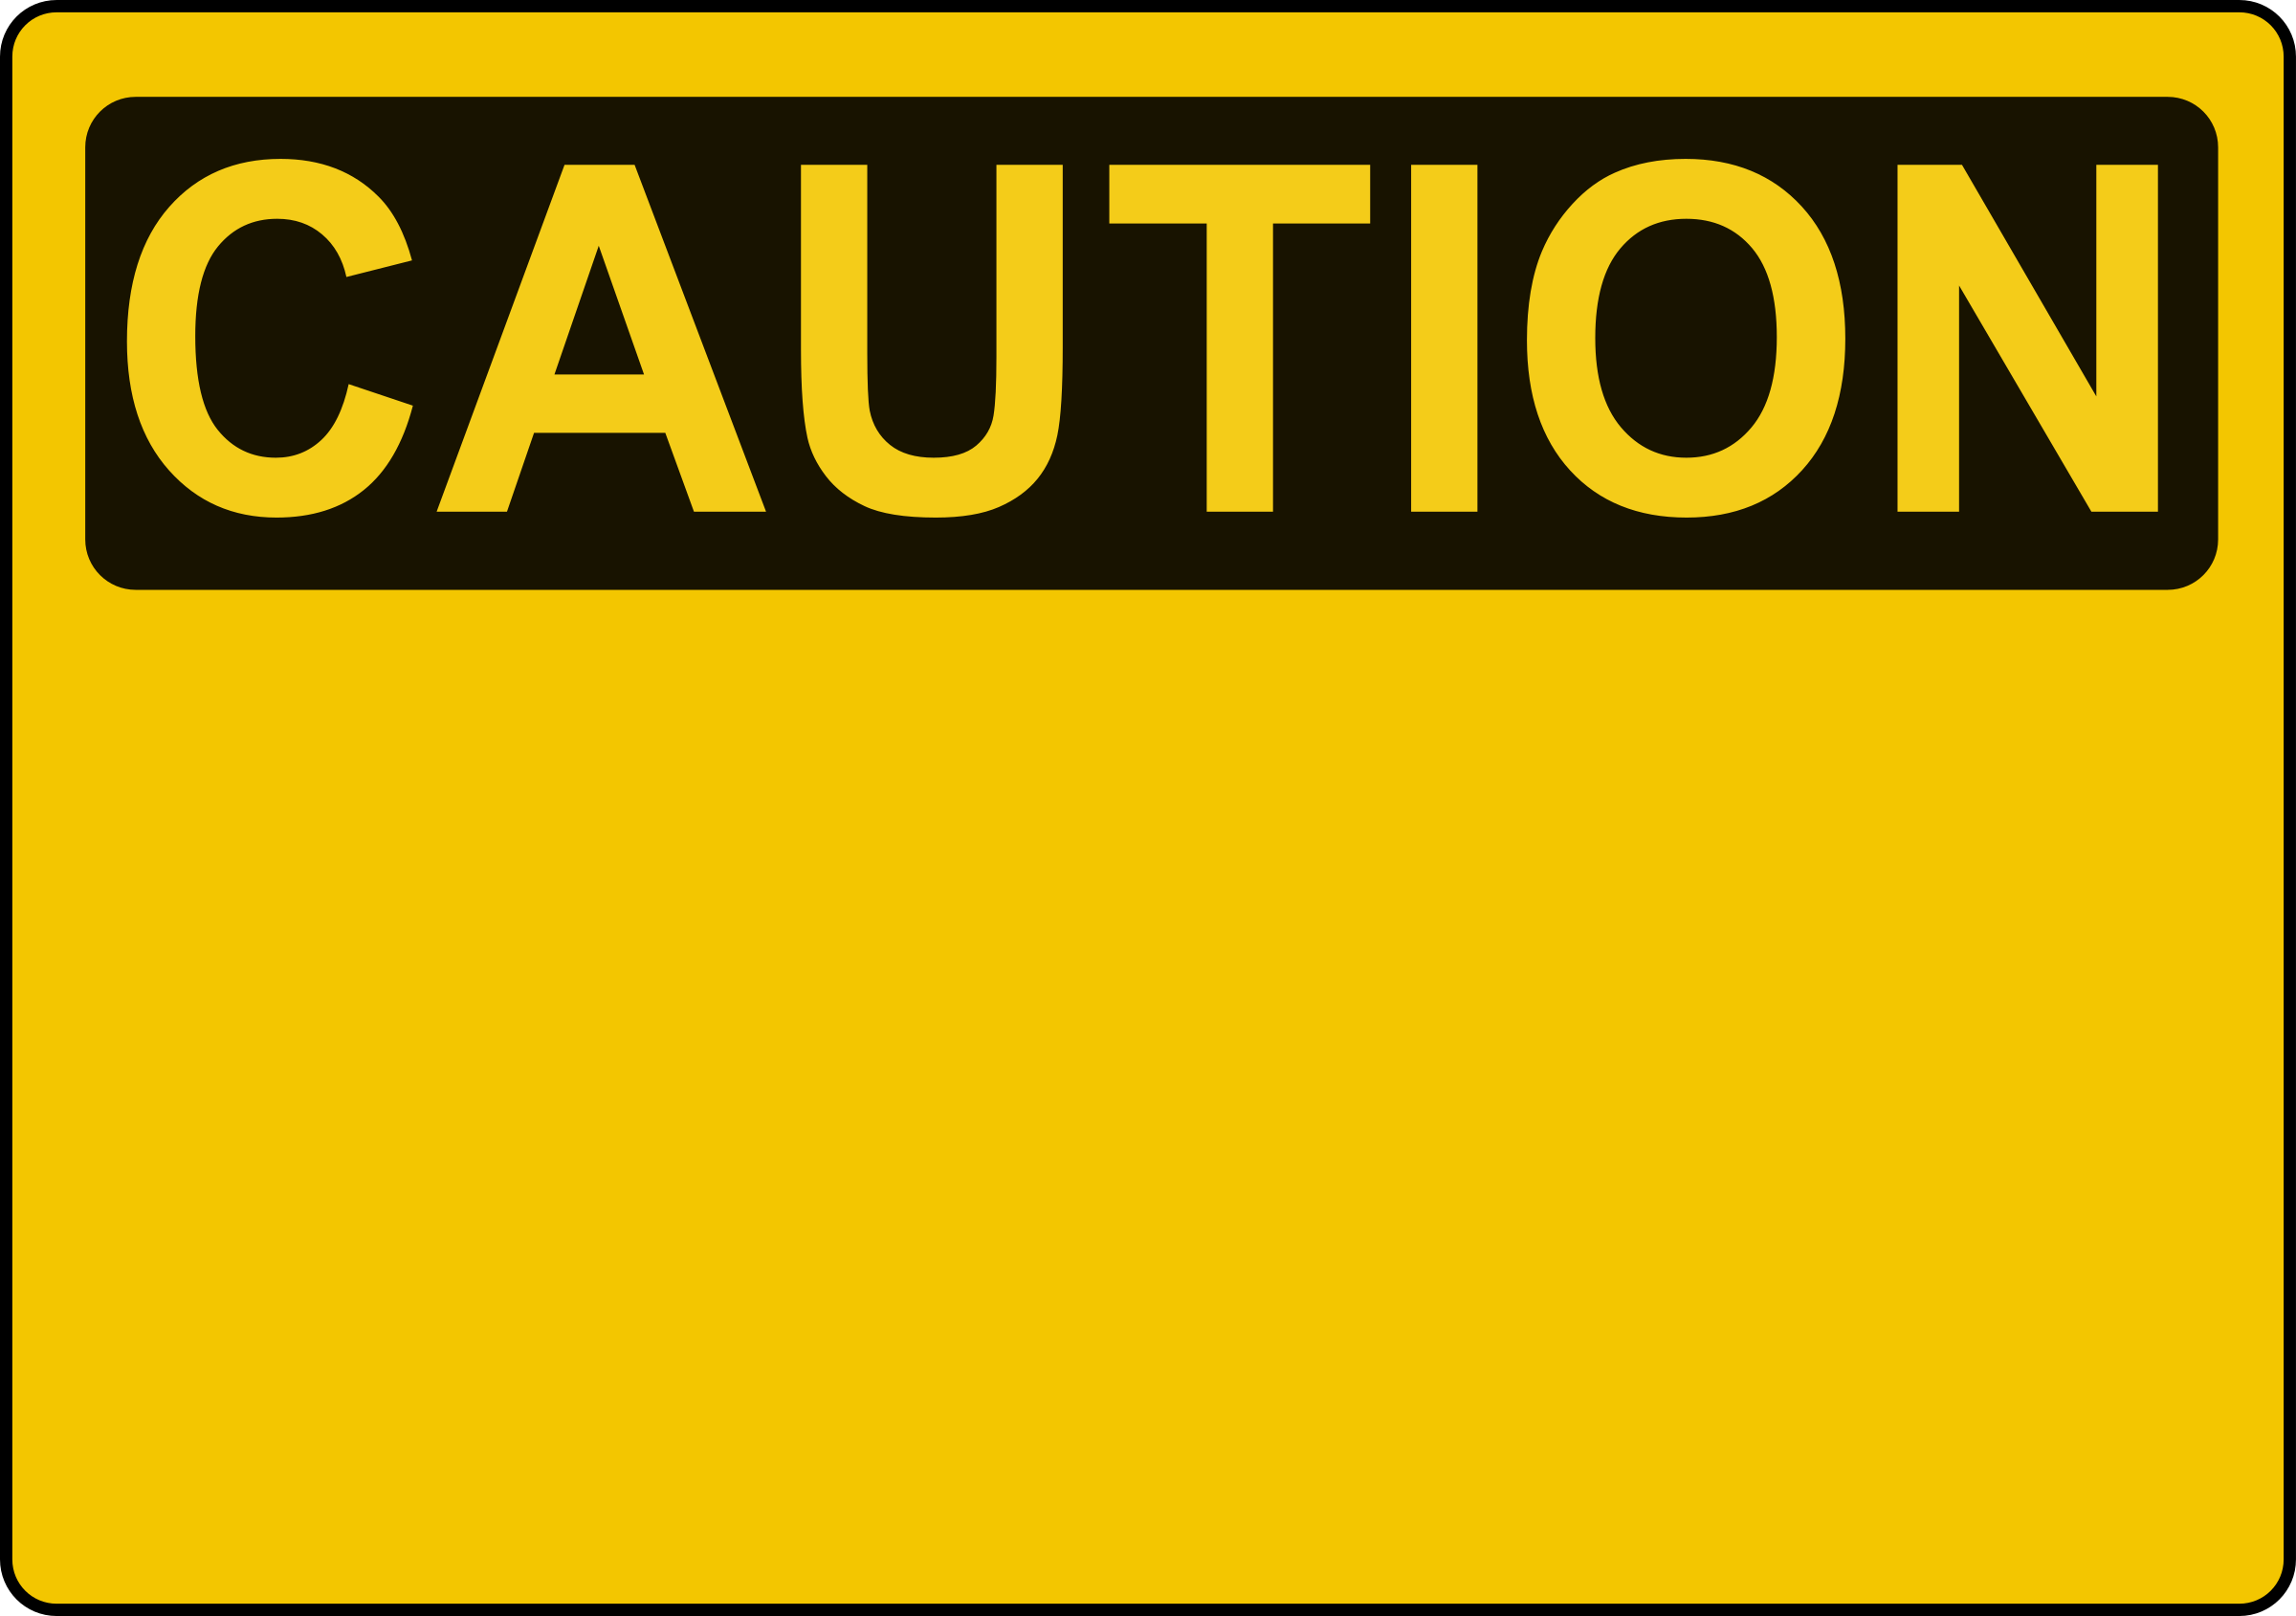 clipart caution sign template. Black Bedroom Furniture Sets. Home Design Ideas